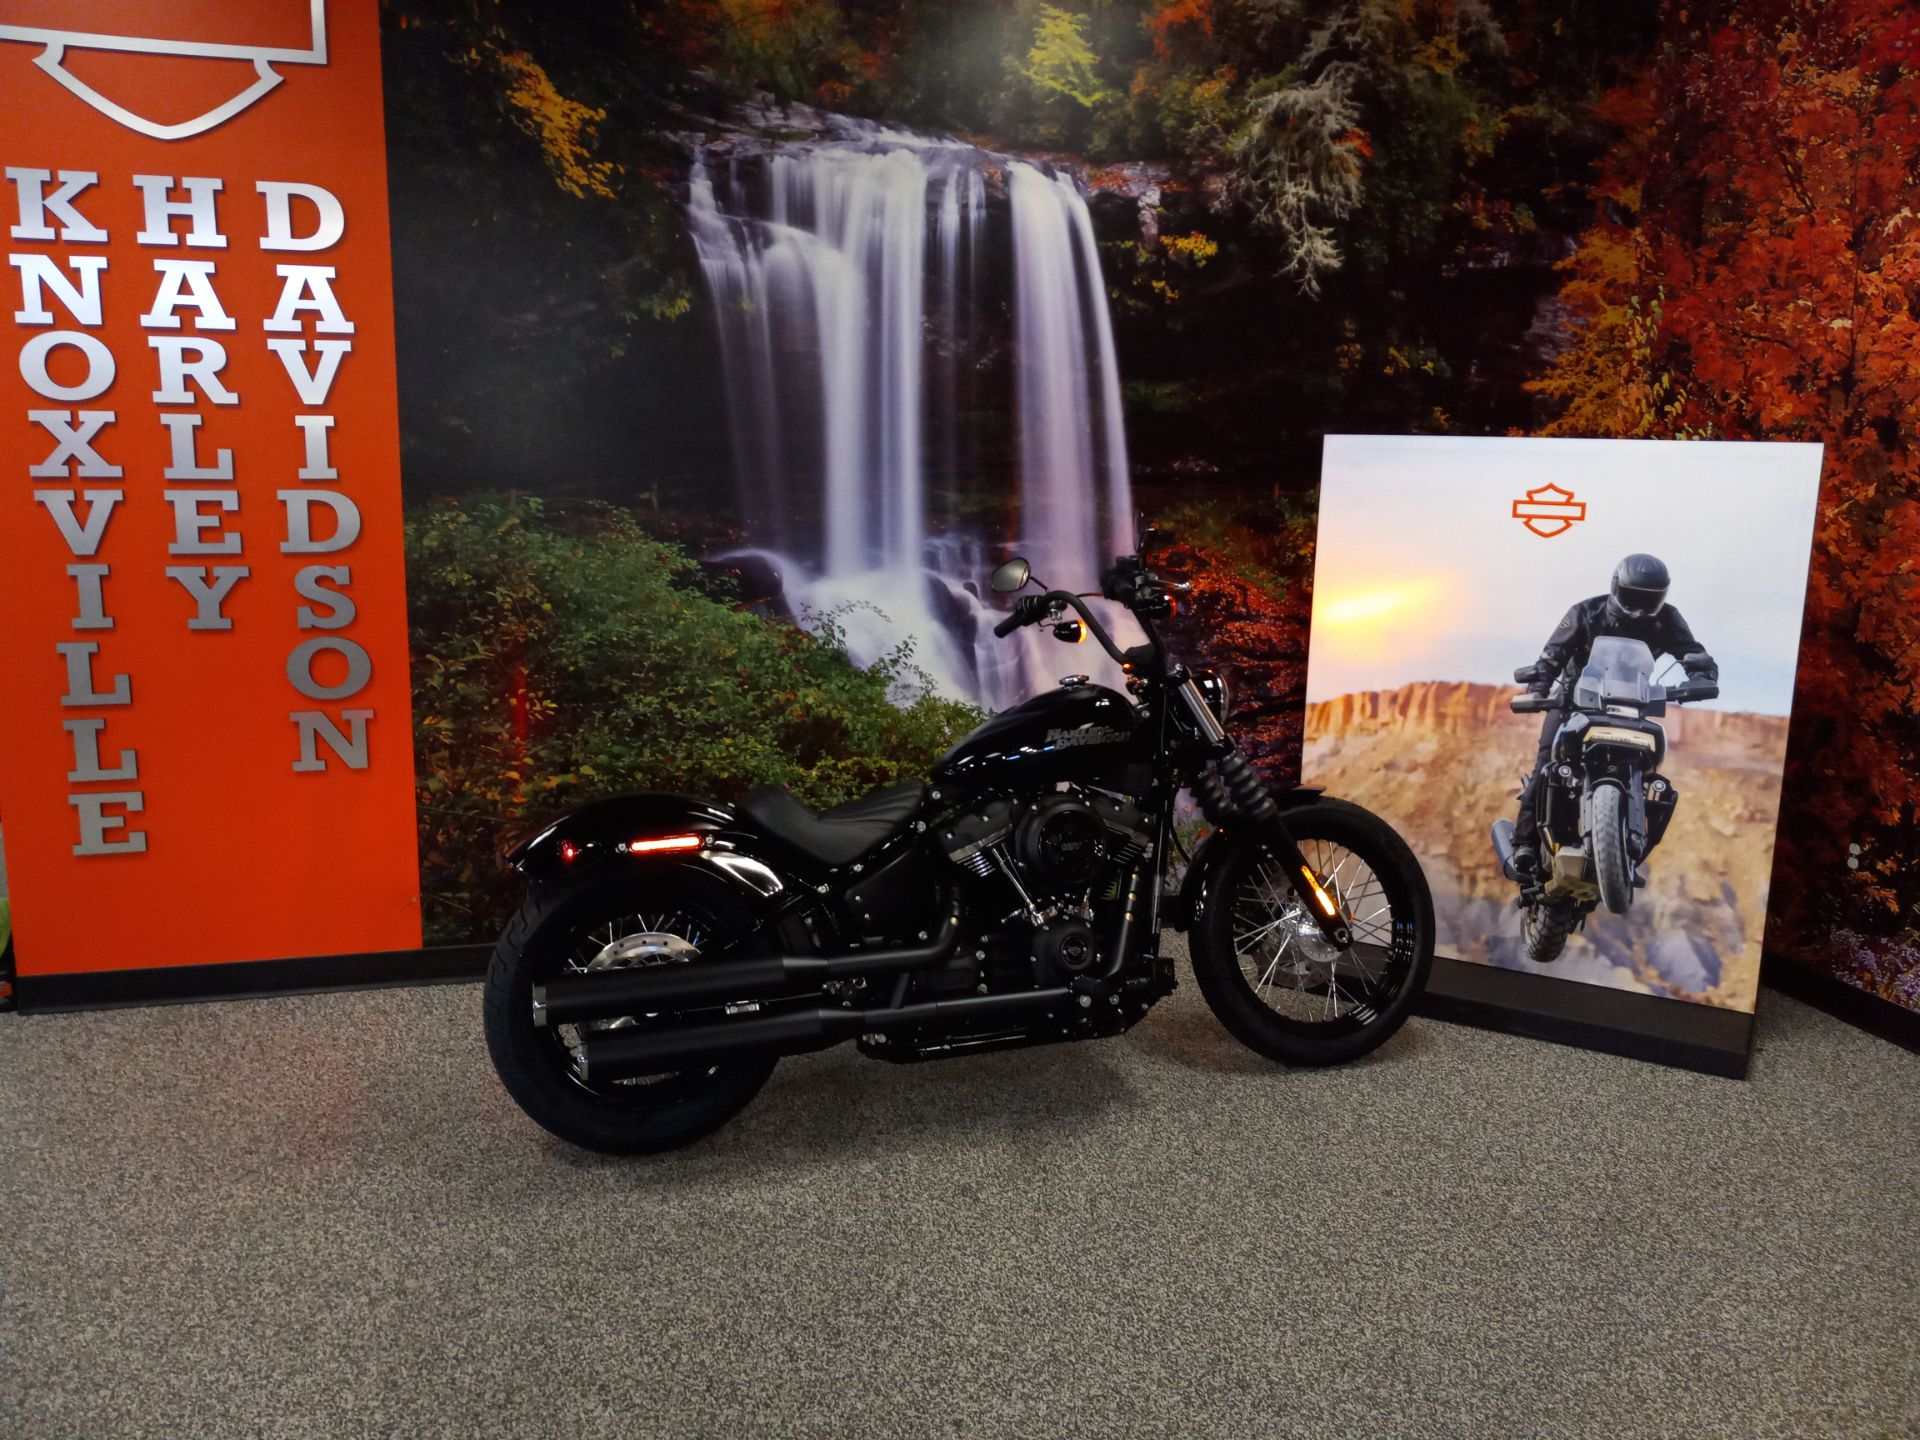 2020 Harley-Davidson Street Bob in Knoxville, Tennessee - Photo 6